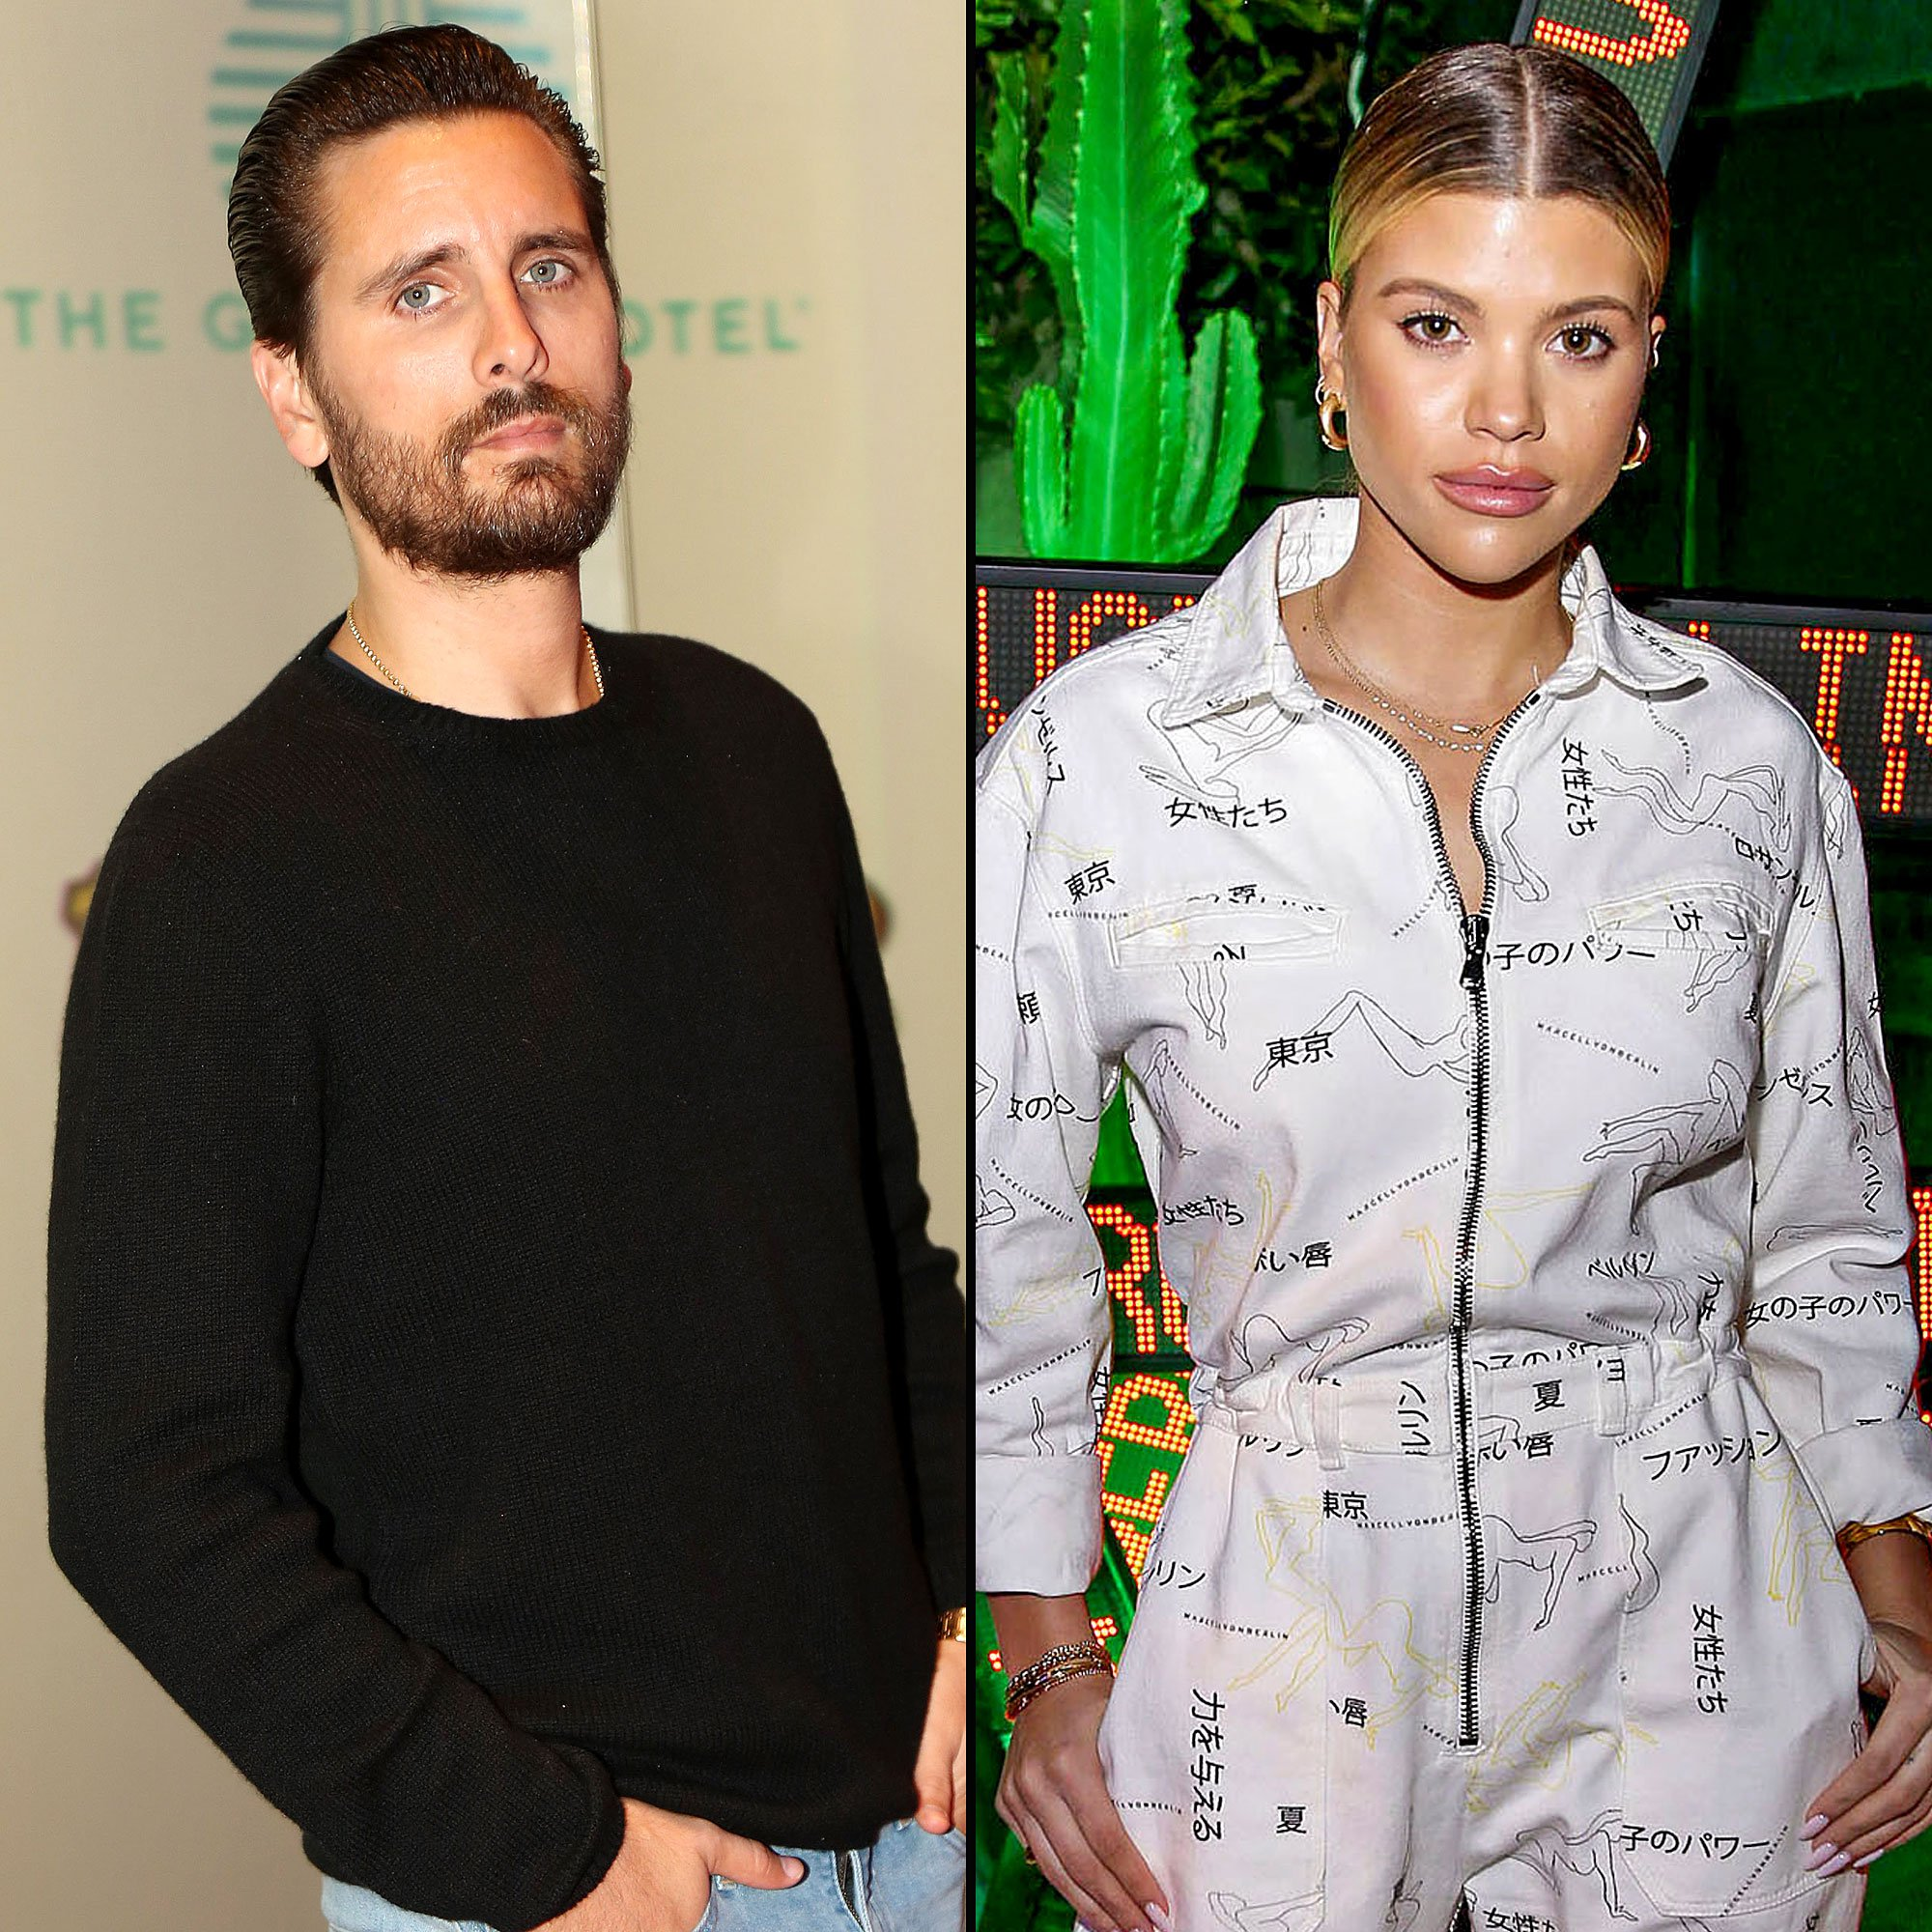 Sofia Richie Shares Ambiguous Quote About 'Outgrowing People' Following Her Split From Scott Disick!